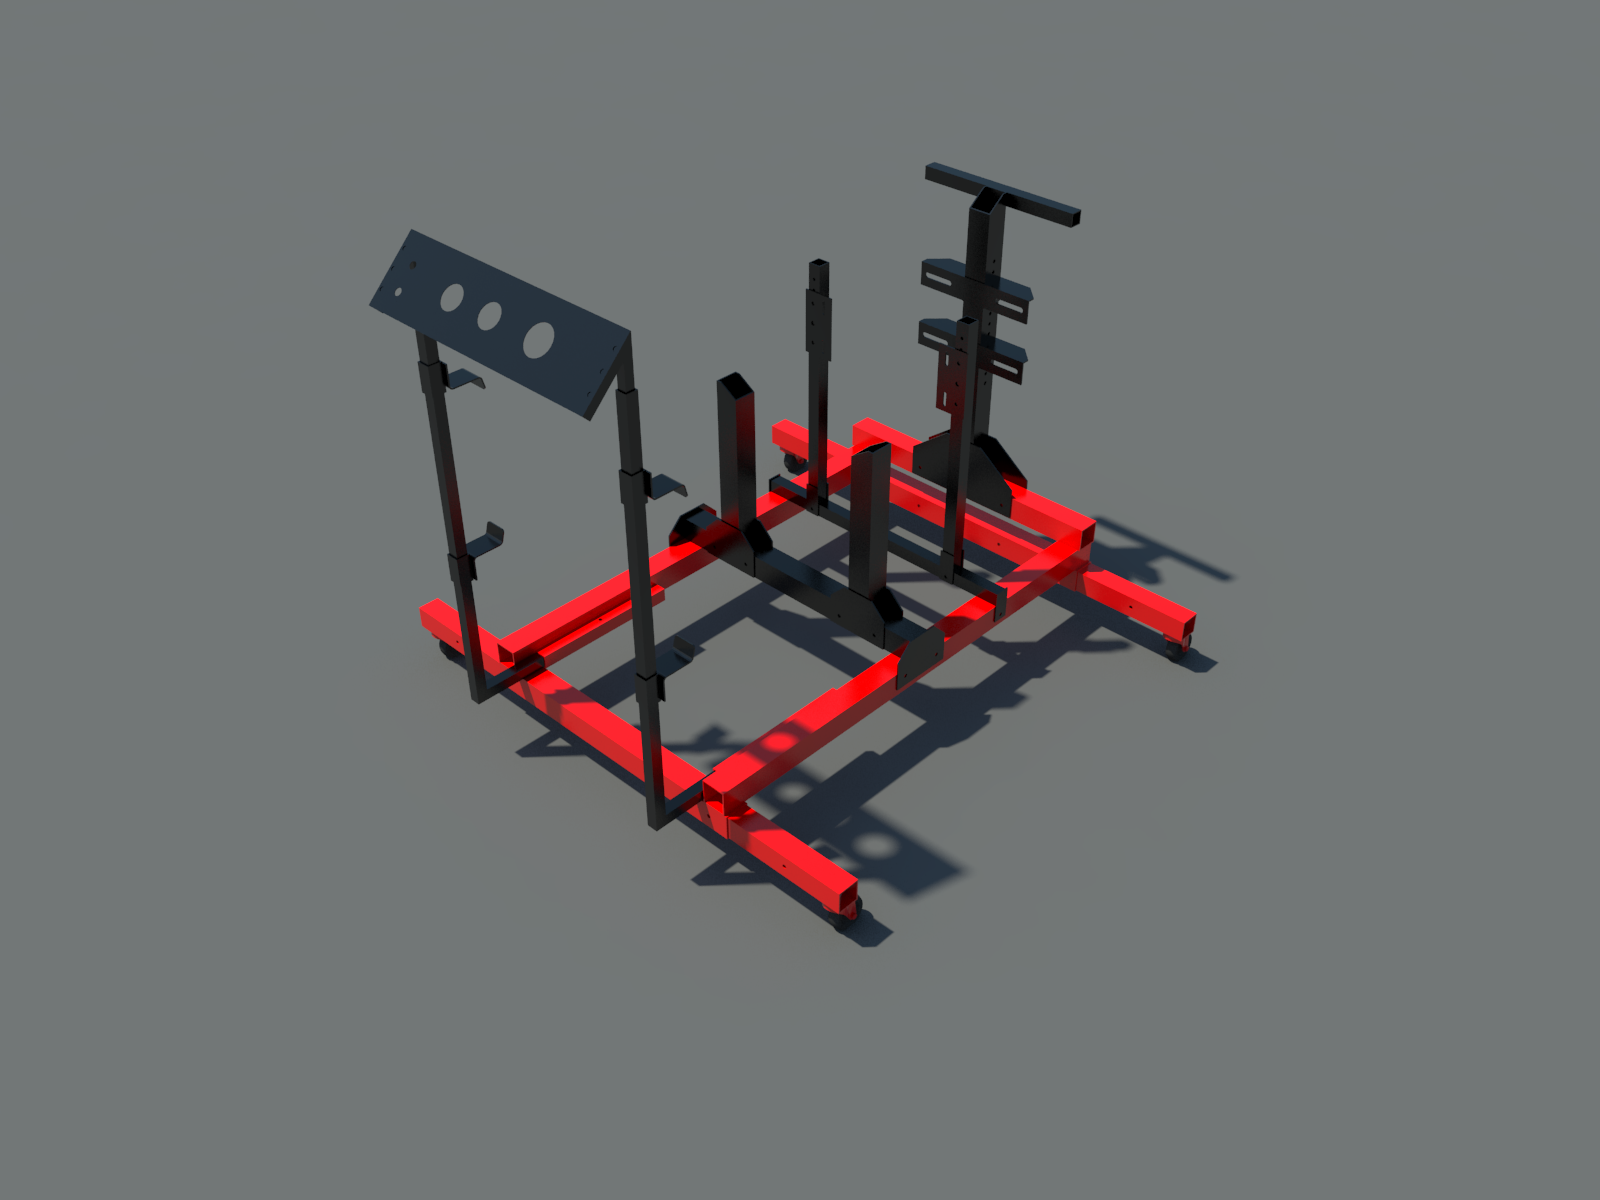 build your own engine testing stand diy plans fun to build save money [ 1600 x 1200 Pixel ]